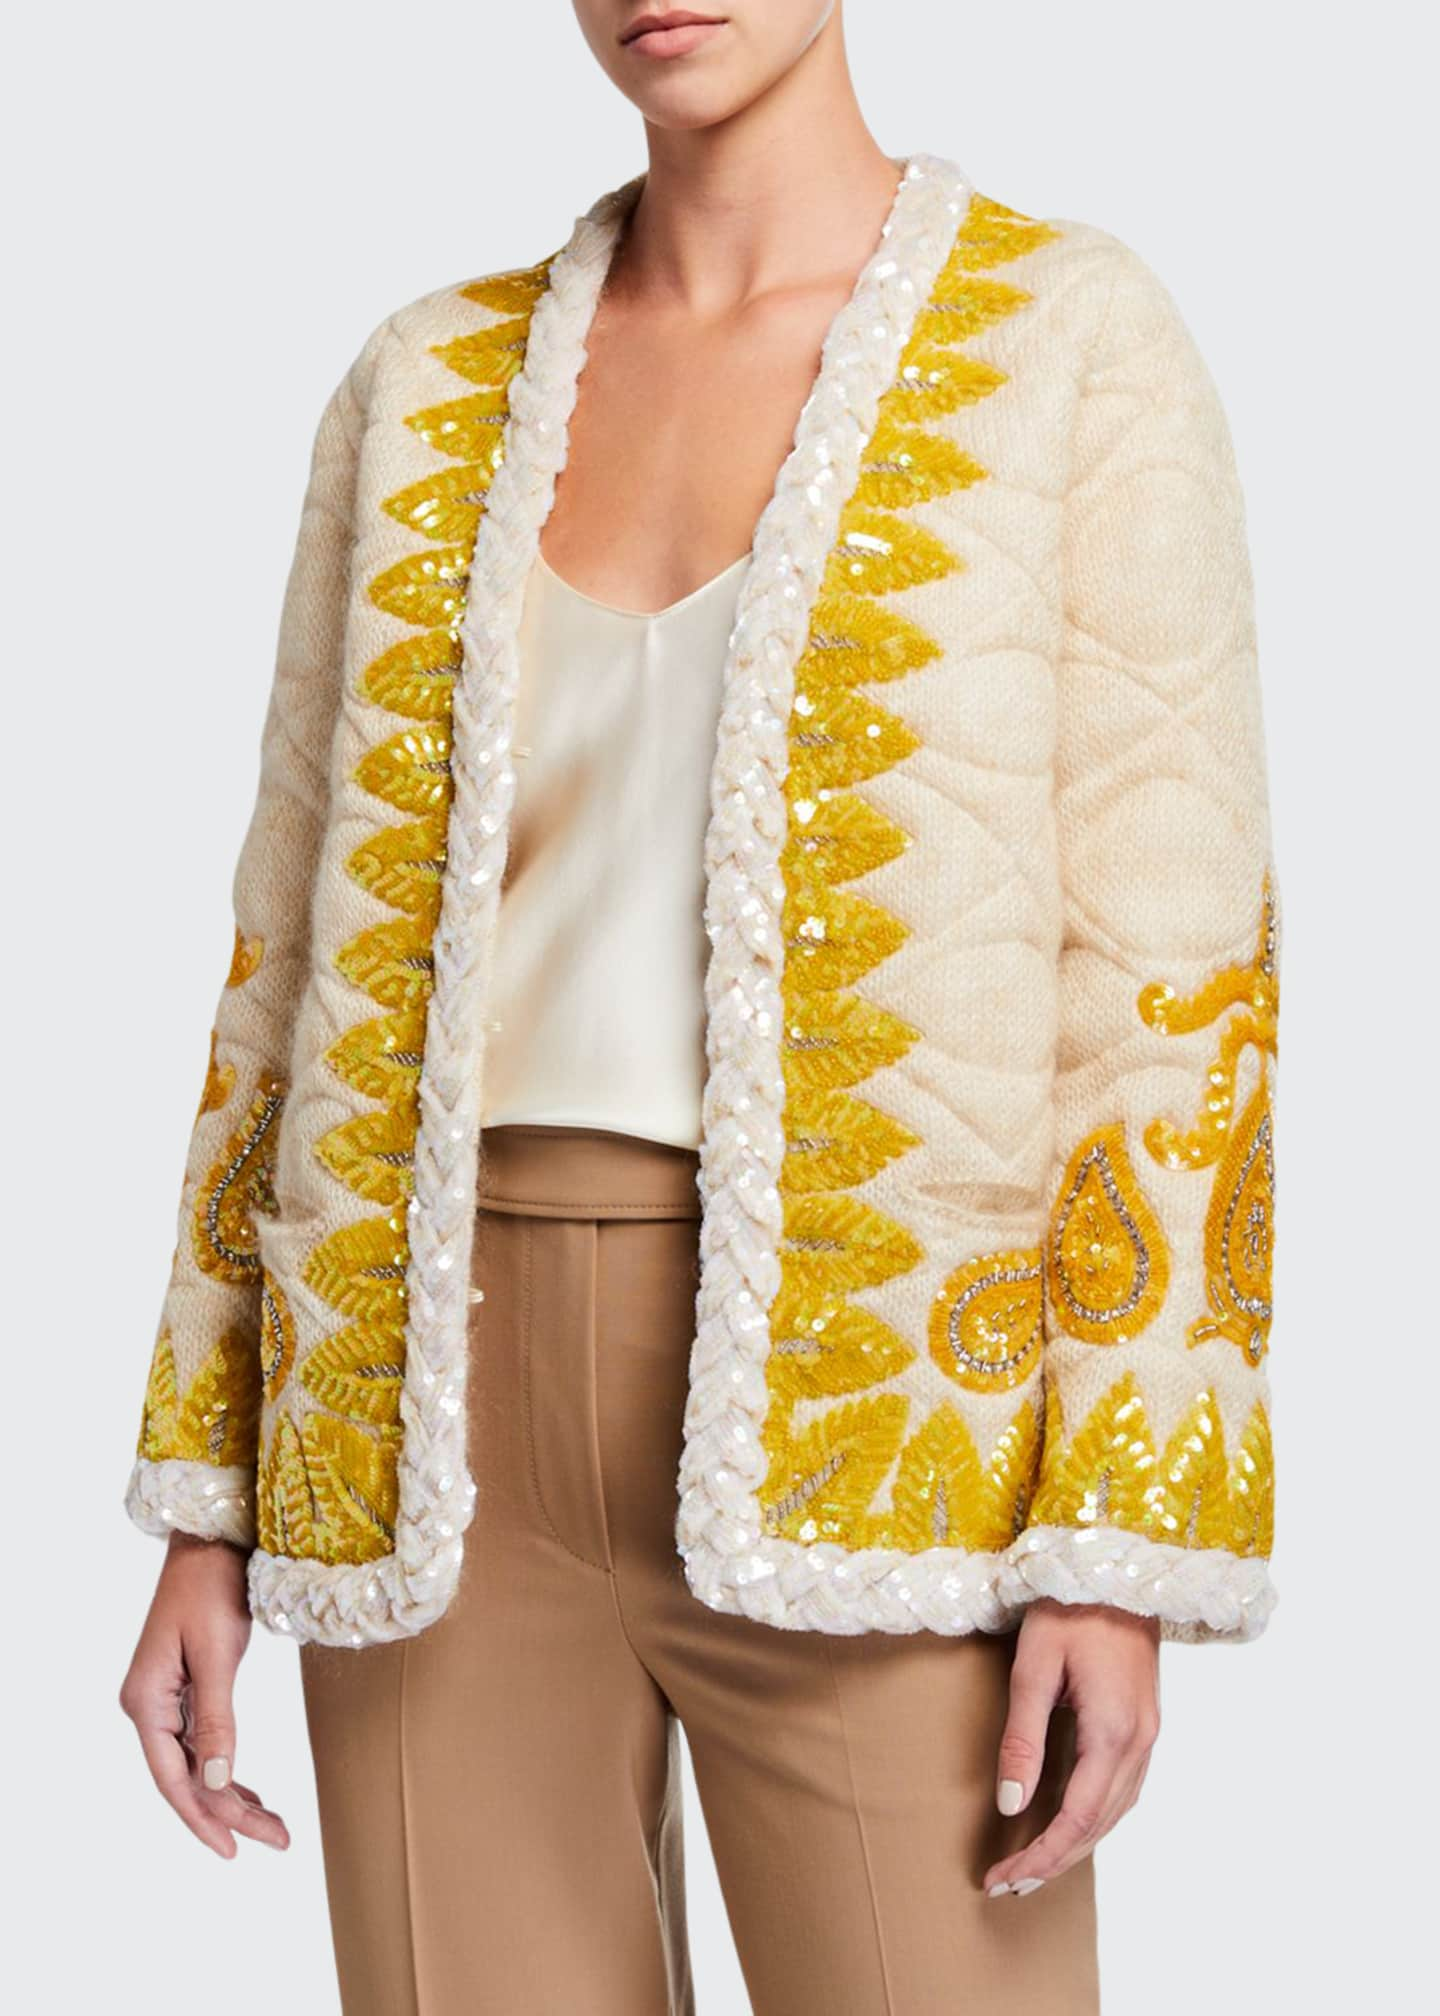 Gucci Embroidered Mohair Evening Jacket